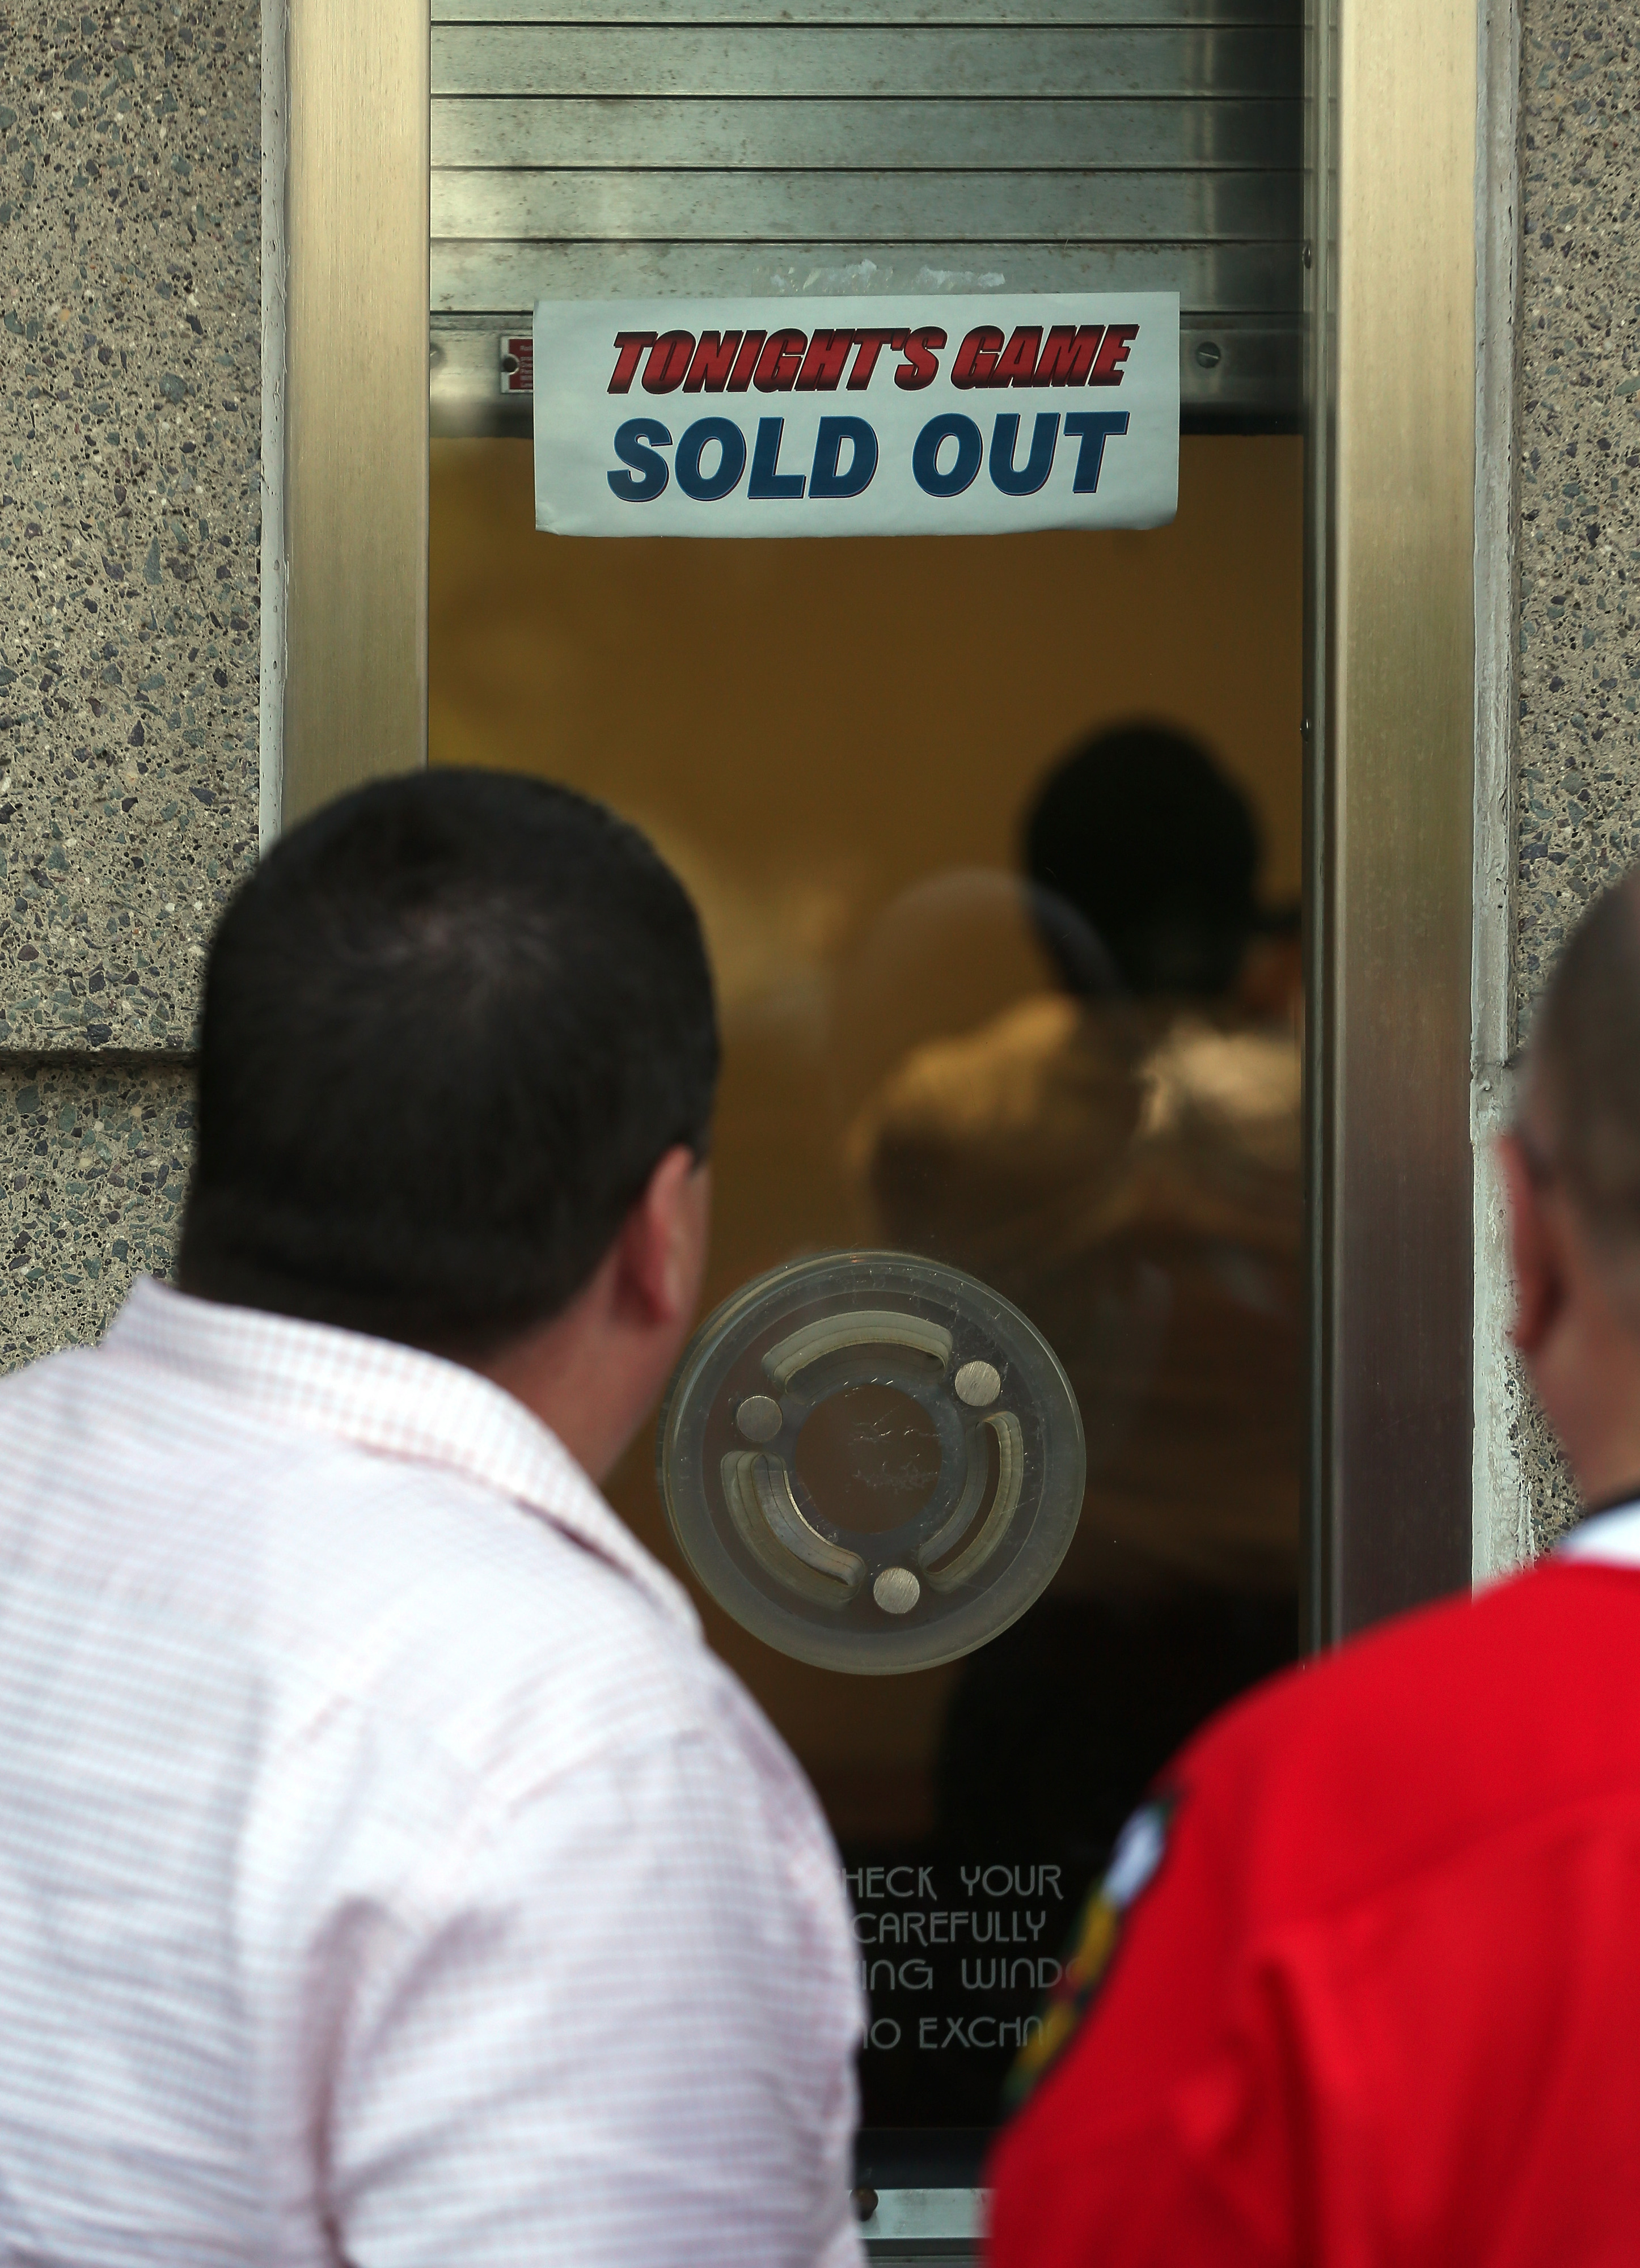 """CHICAGO, IL - JUNE 15: A sign which reads """"Tonight's Game Sold Out"""" as fans stand outside the ticket window prior to Game Two of the NHL 2013 Stanley Cup Final between the Chicago Blackhawks and the Boston Bruins at United Center on June 15, 2013."""